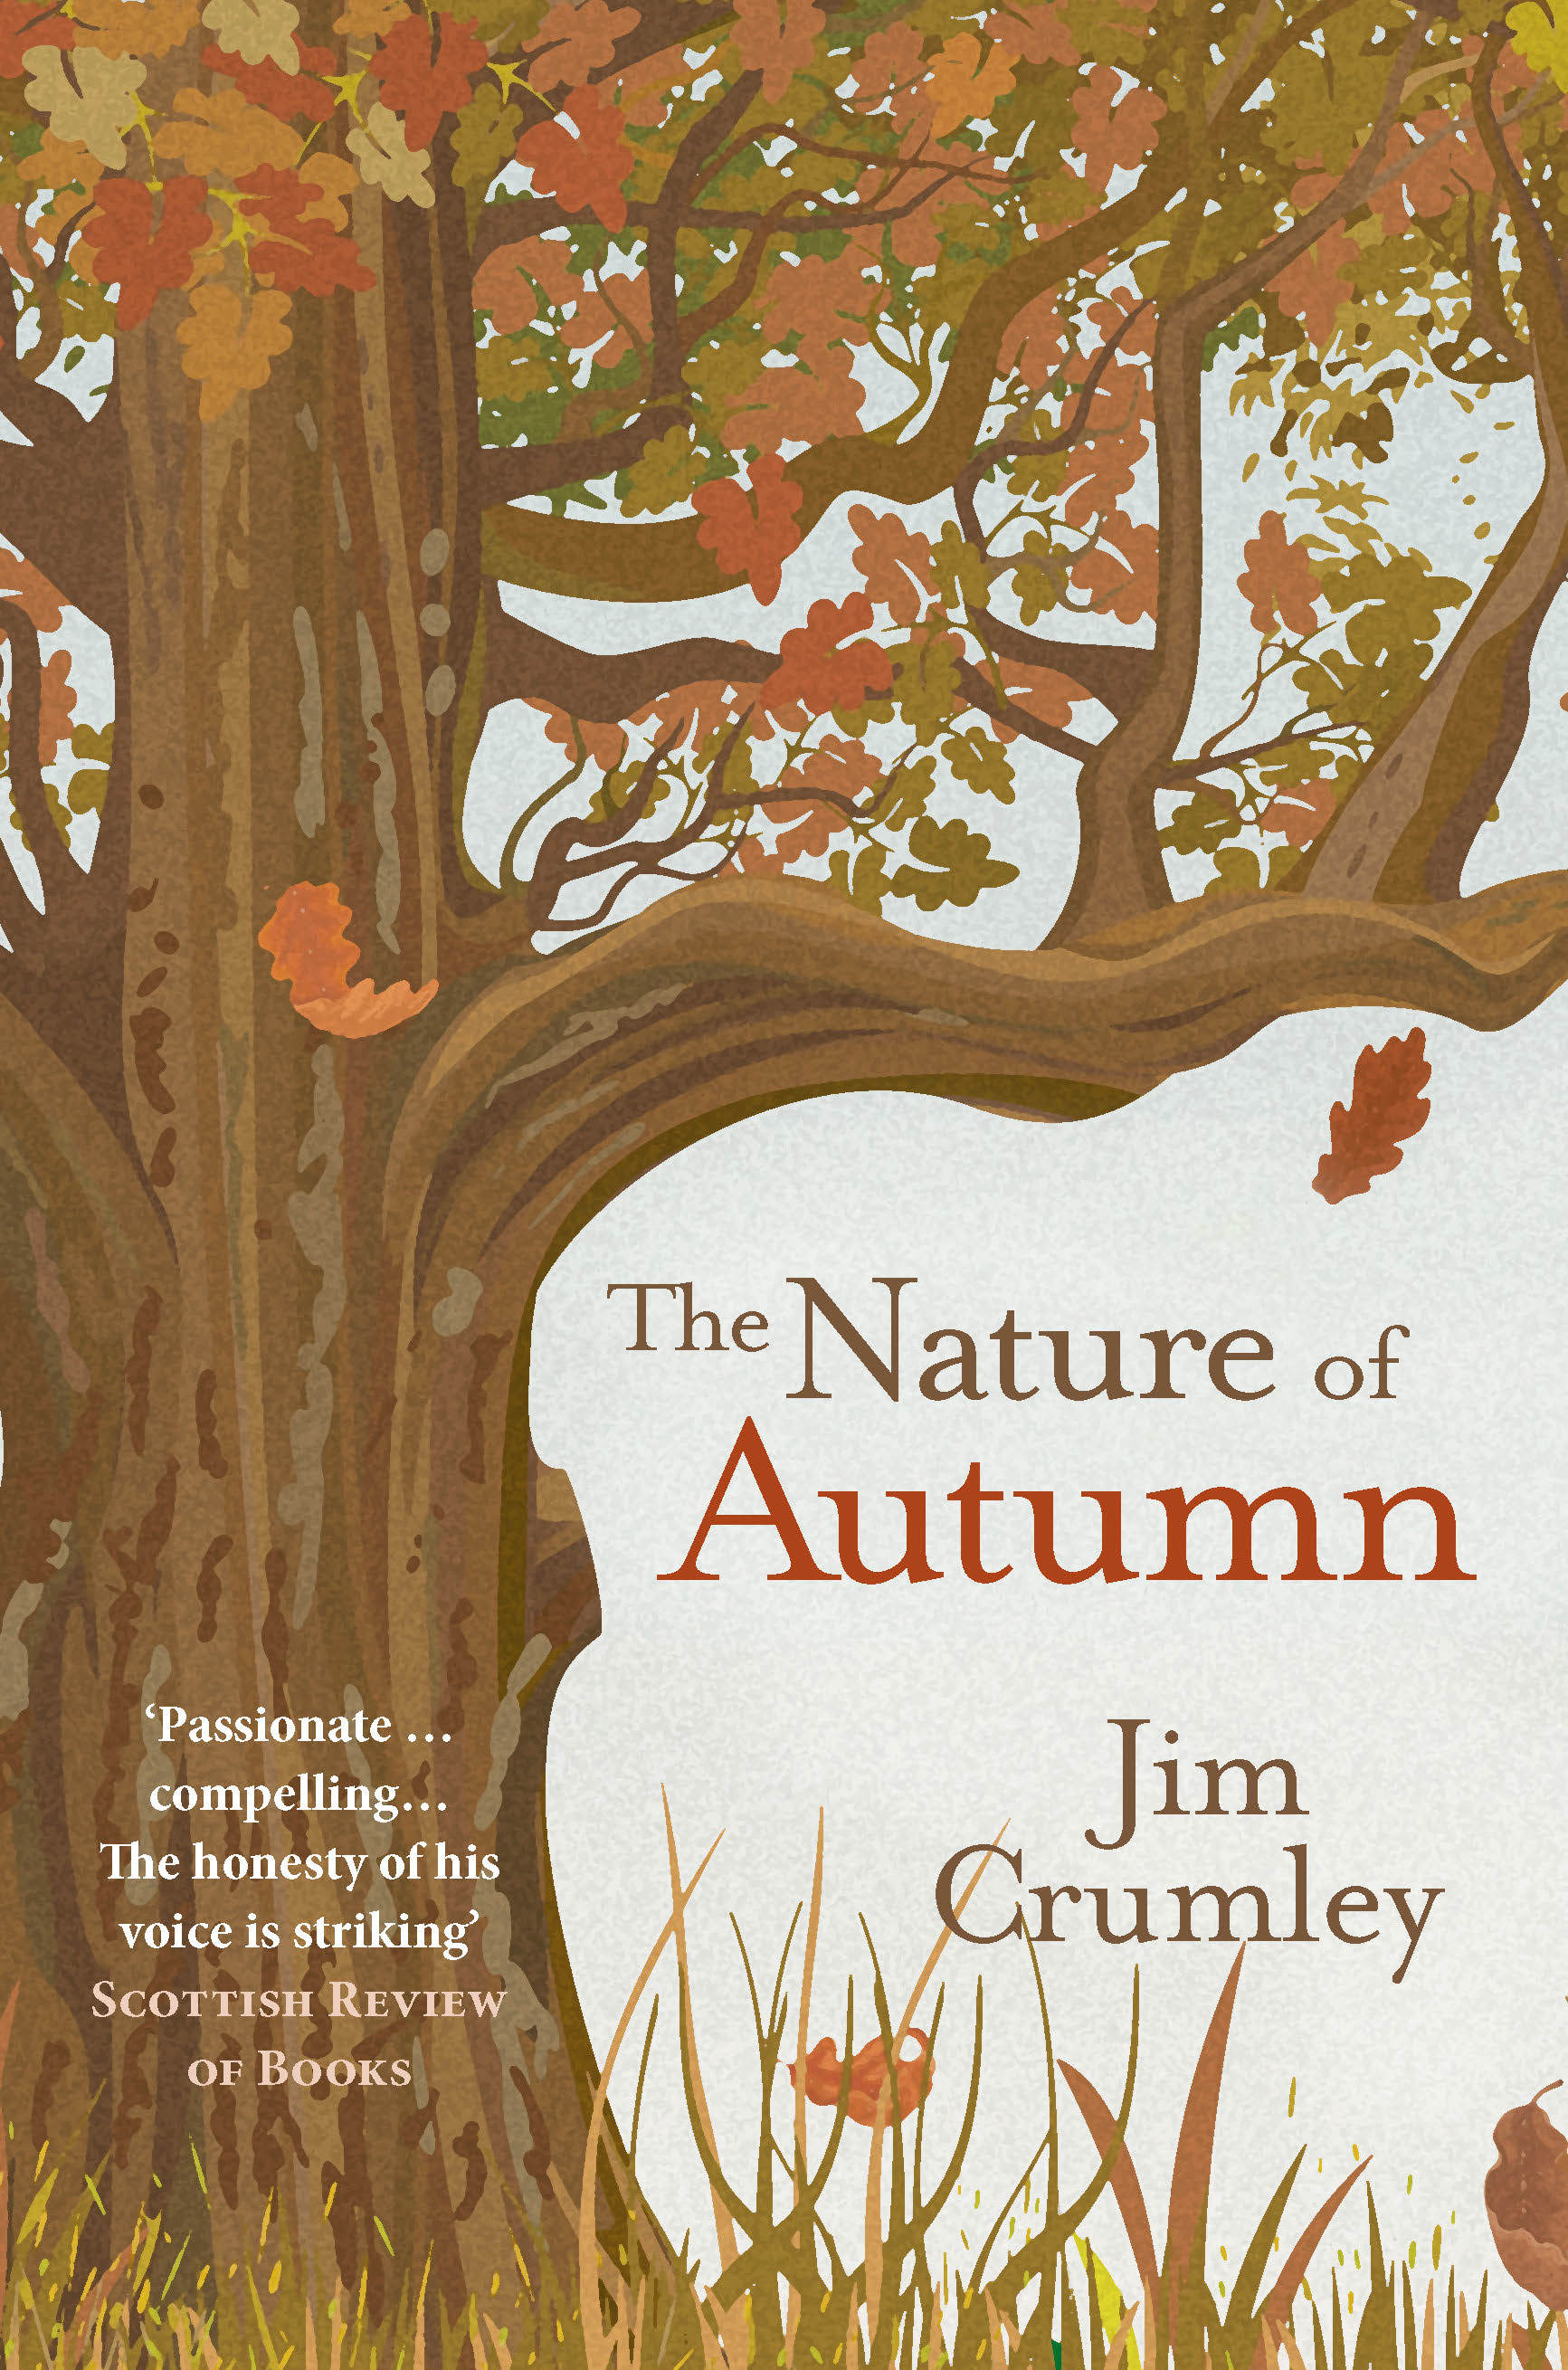 News & Events > The Nature of Autumn shortlisted for the Richard Jefferies  Society and White Horse Bookshop Literary Prize 2017